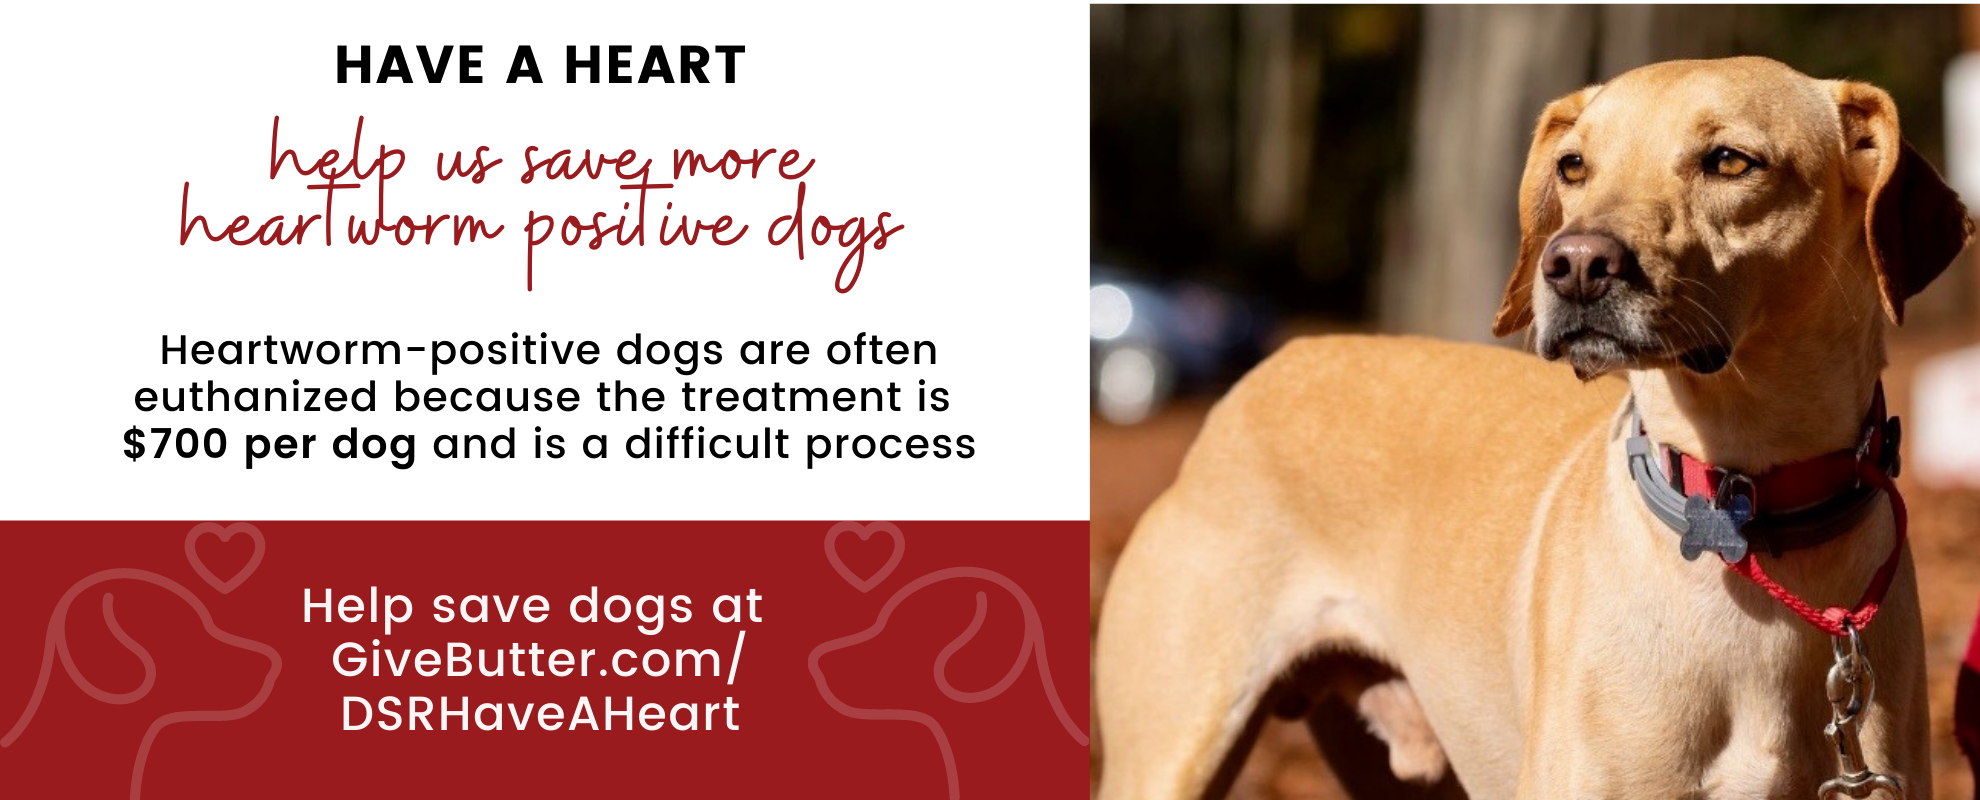 dog star have a heart campaign